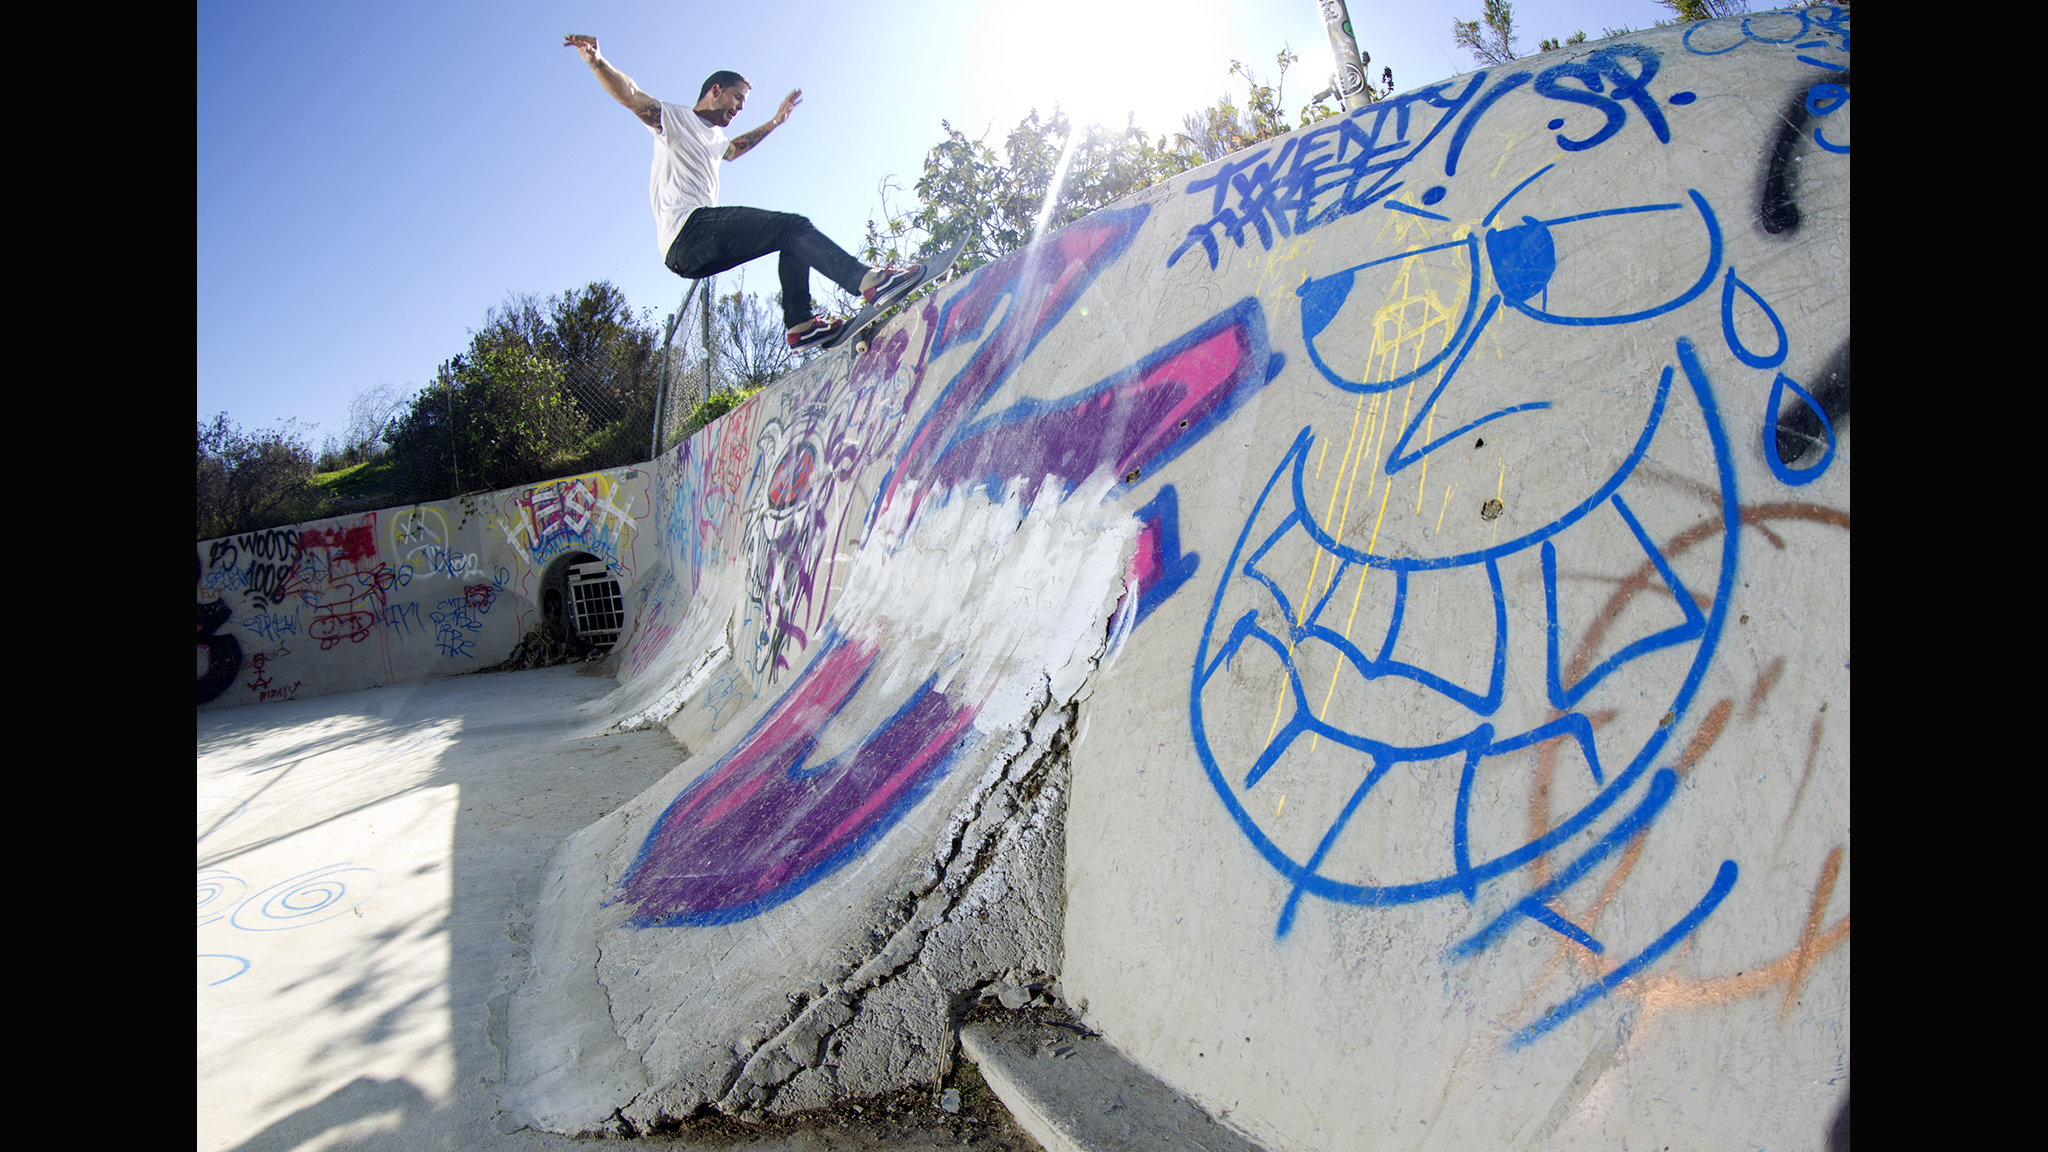 Nate Lacoste, F/S feeble